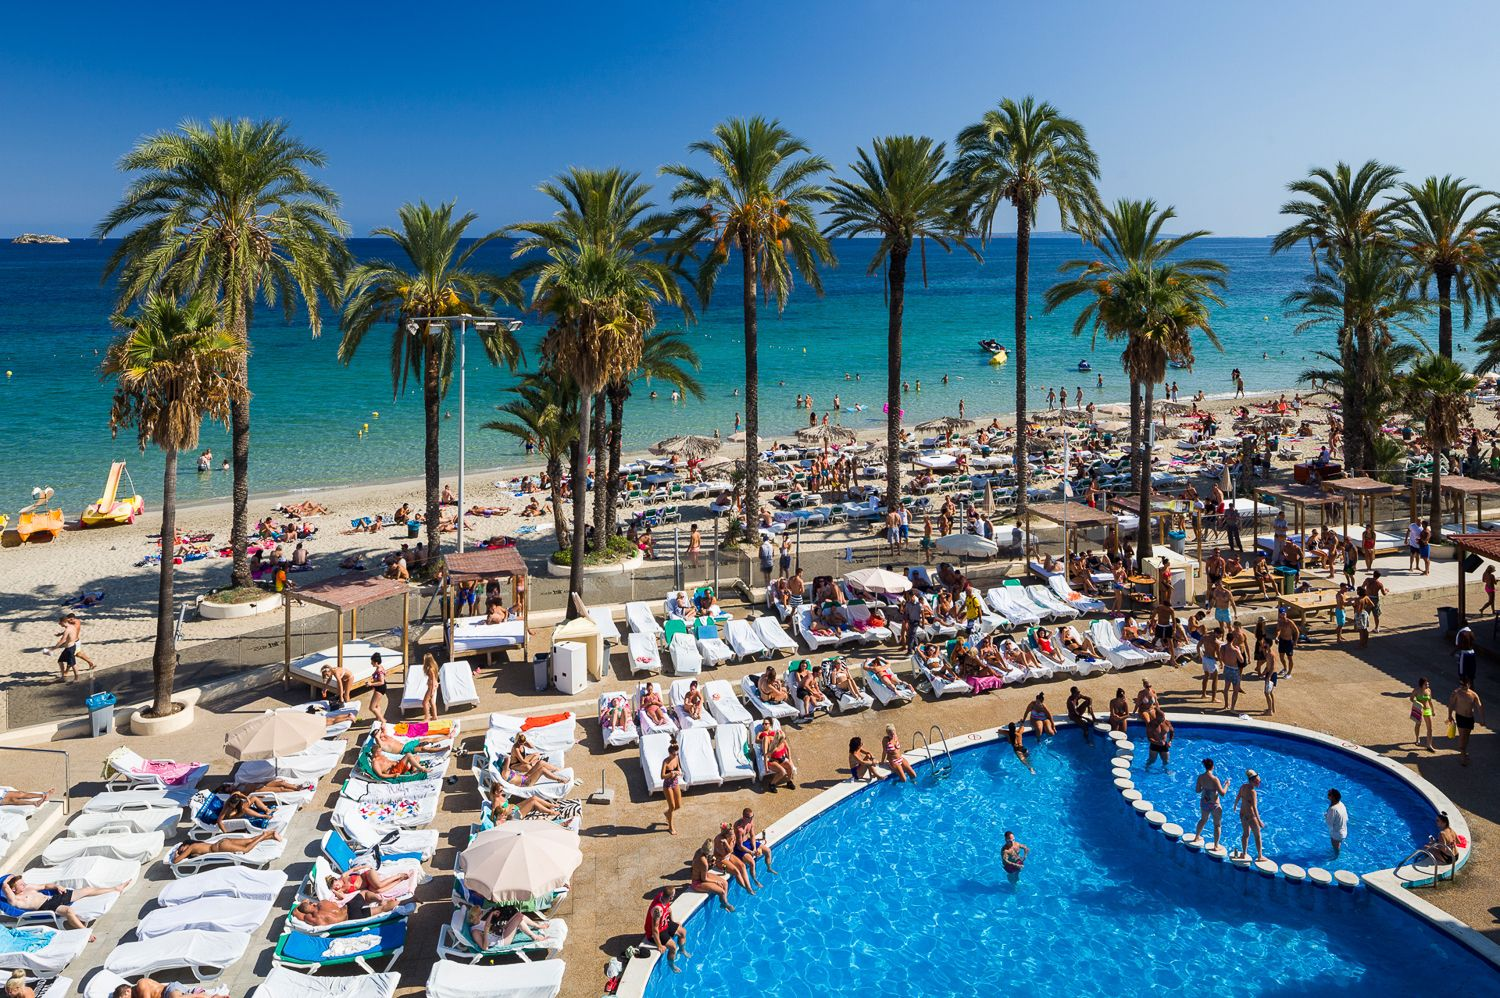 travel to ibiza and barcelona, spain with benmoor travel on an all